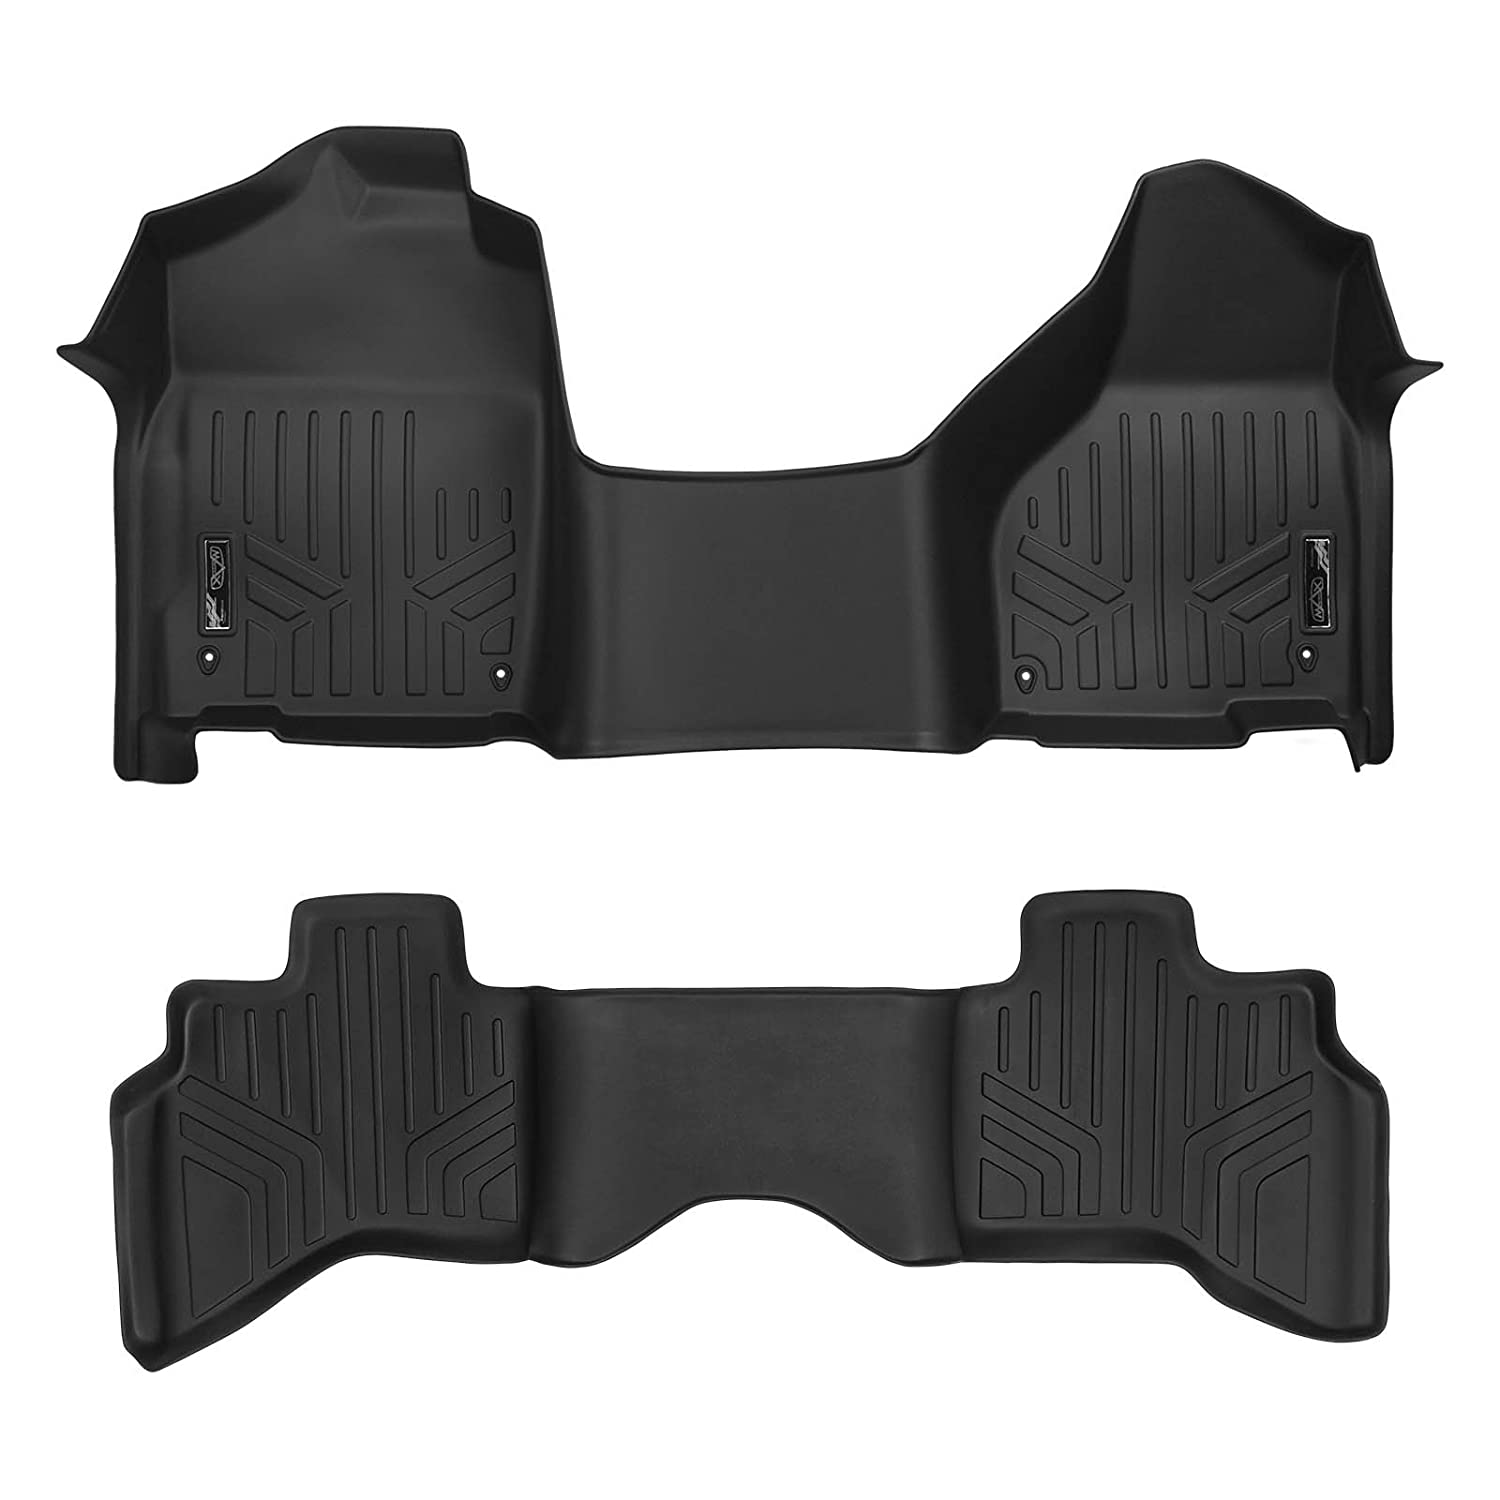 SMARTLINER Floor Mats 2 Row Liner Set Black for 2012-2018 RAM 1500 Quad Cab with 1st Row Bench Seat and Front Dual Floor Hooks MAXLINER A0319/B0048